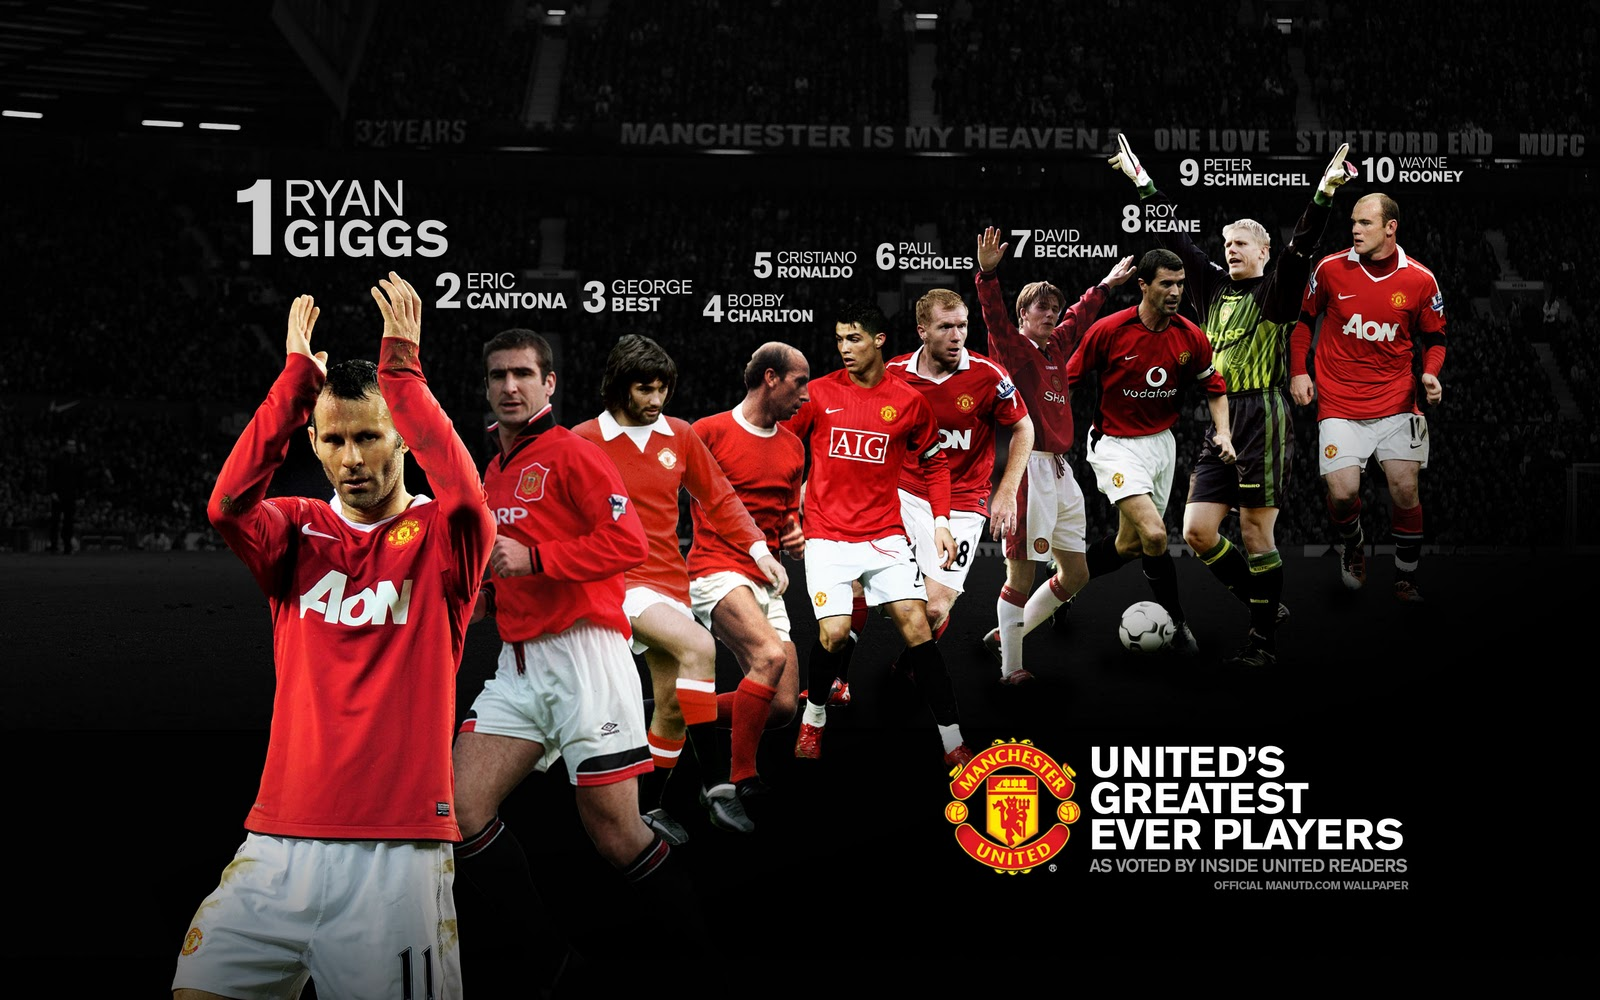 all the best players on manchester